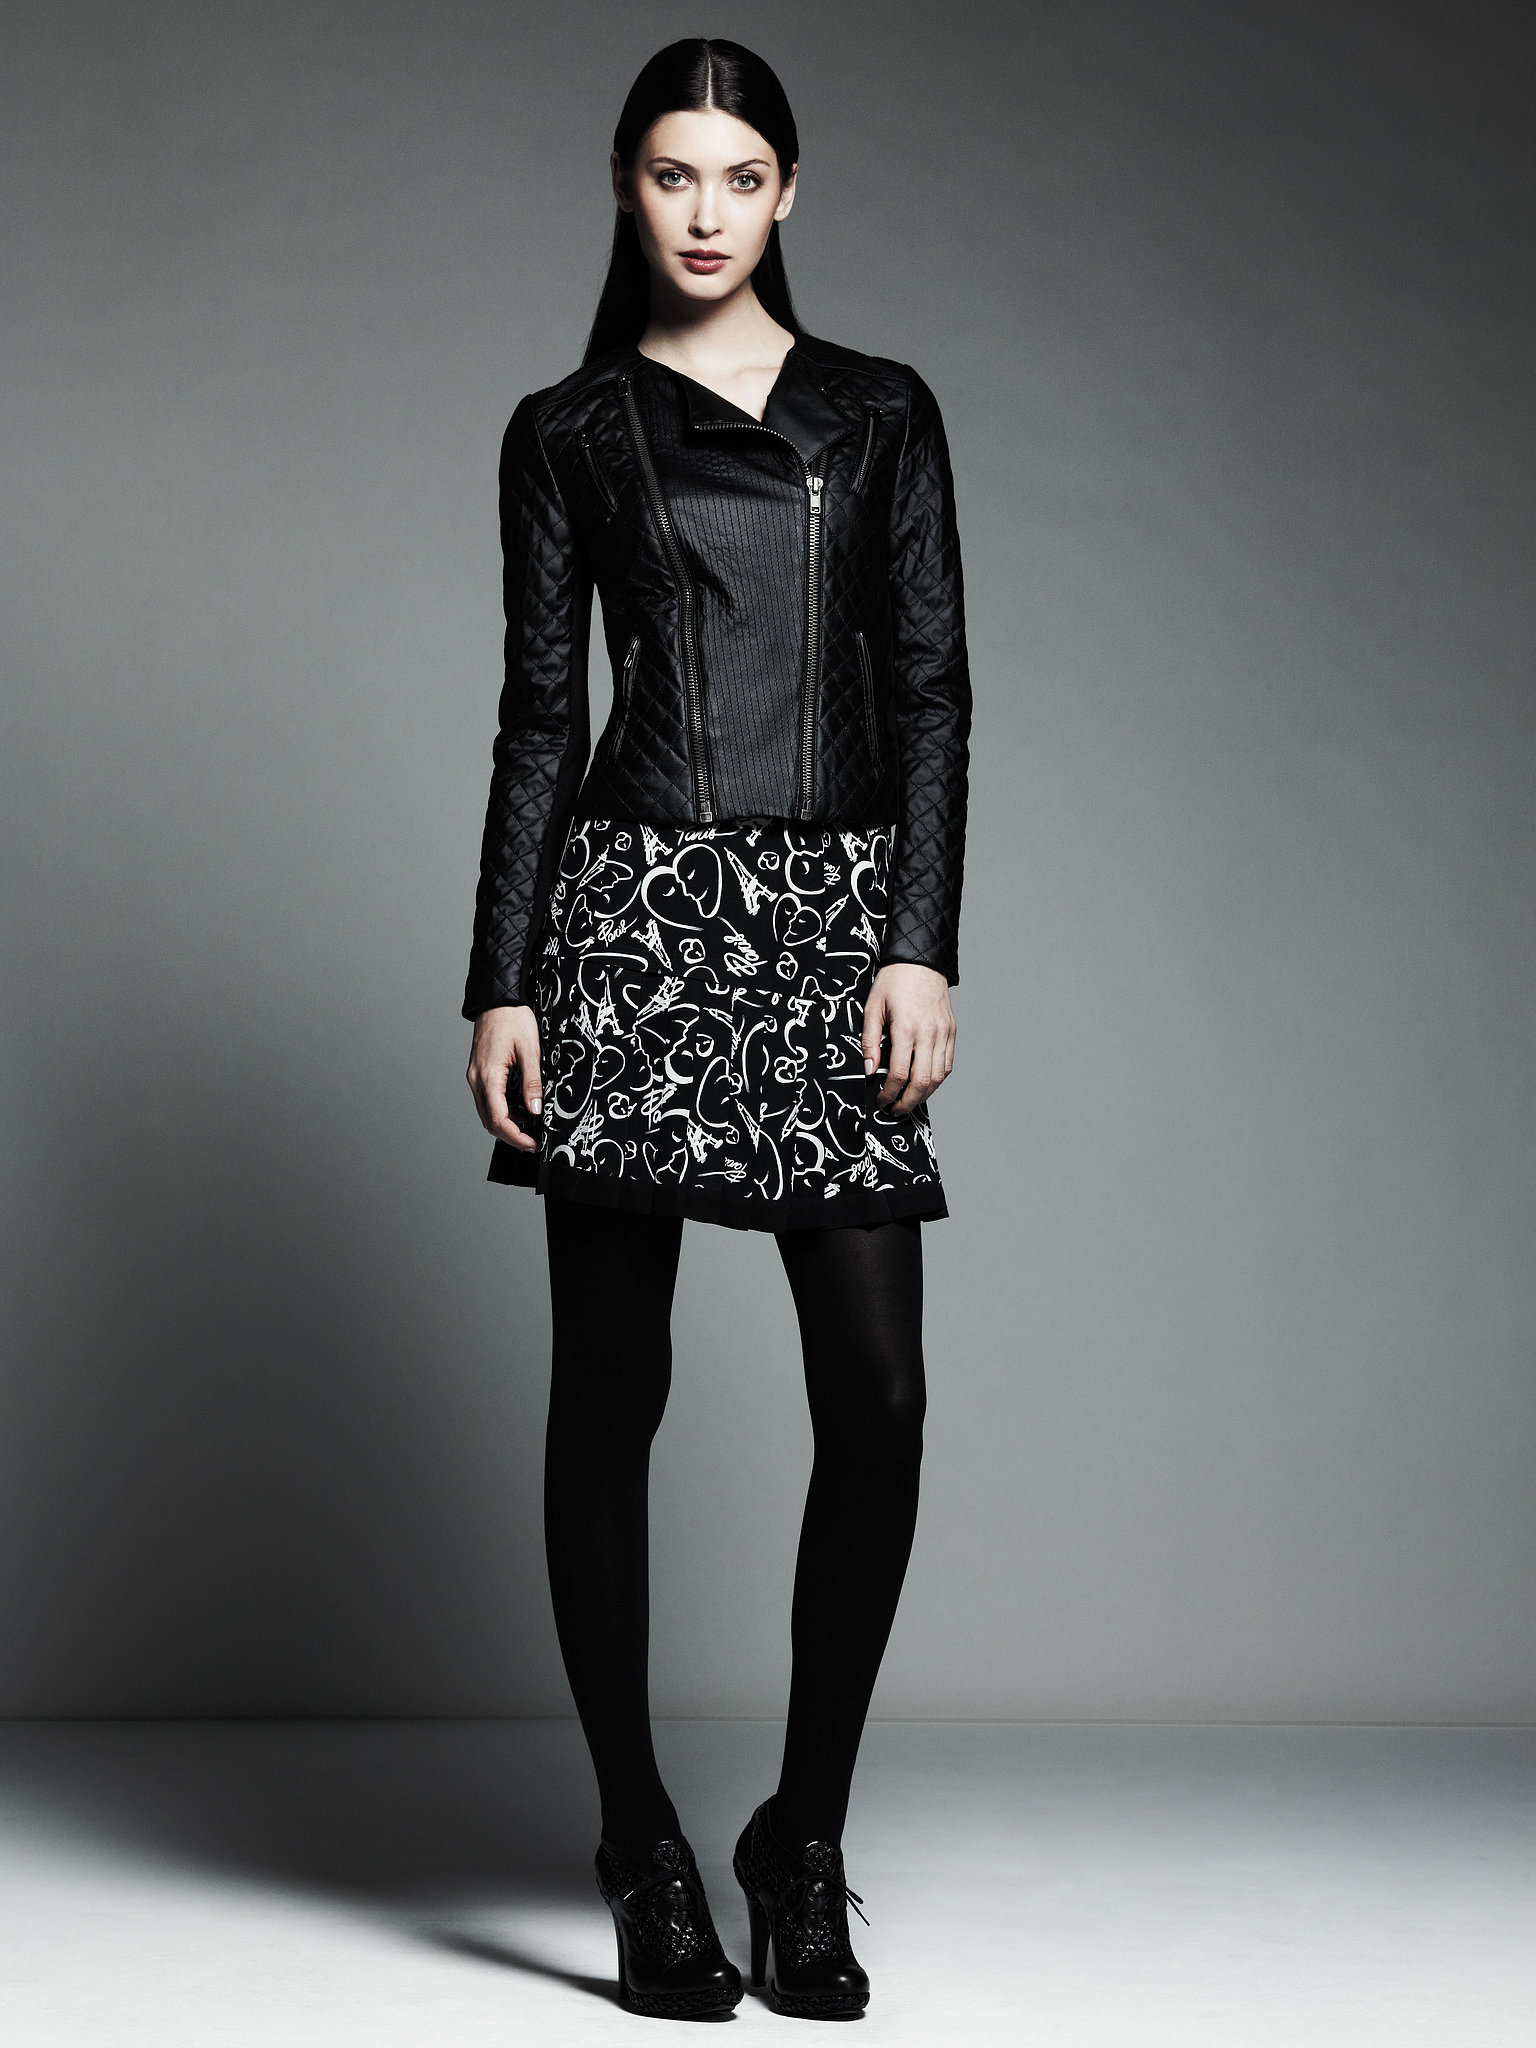 Quilted Motorcycle Jacket ($120), Printed Elastic Band Pleated Skirt ($54) Photo courtesy of Kohl's